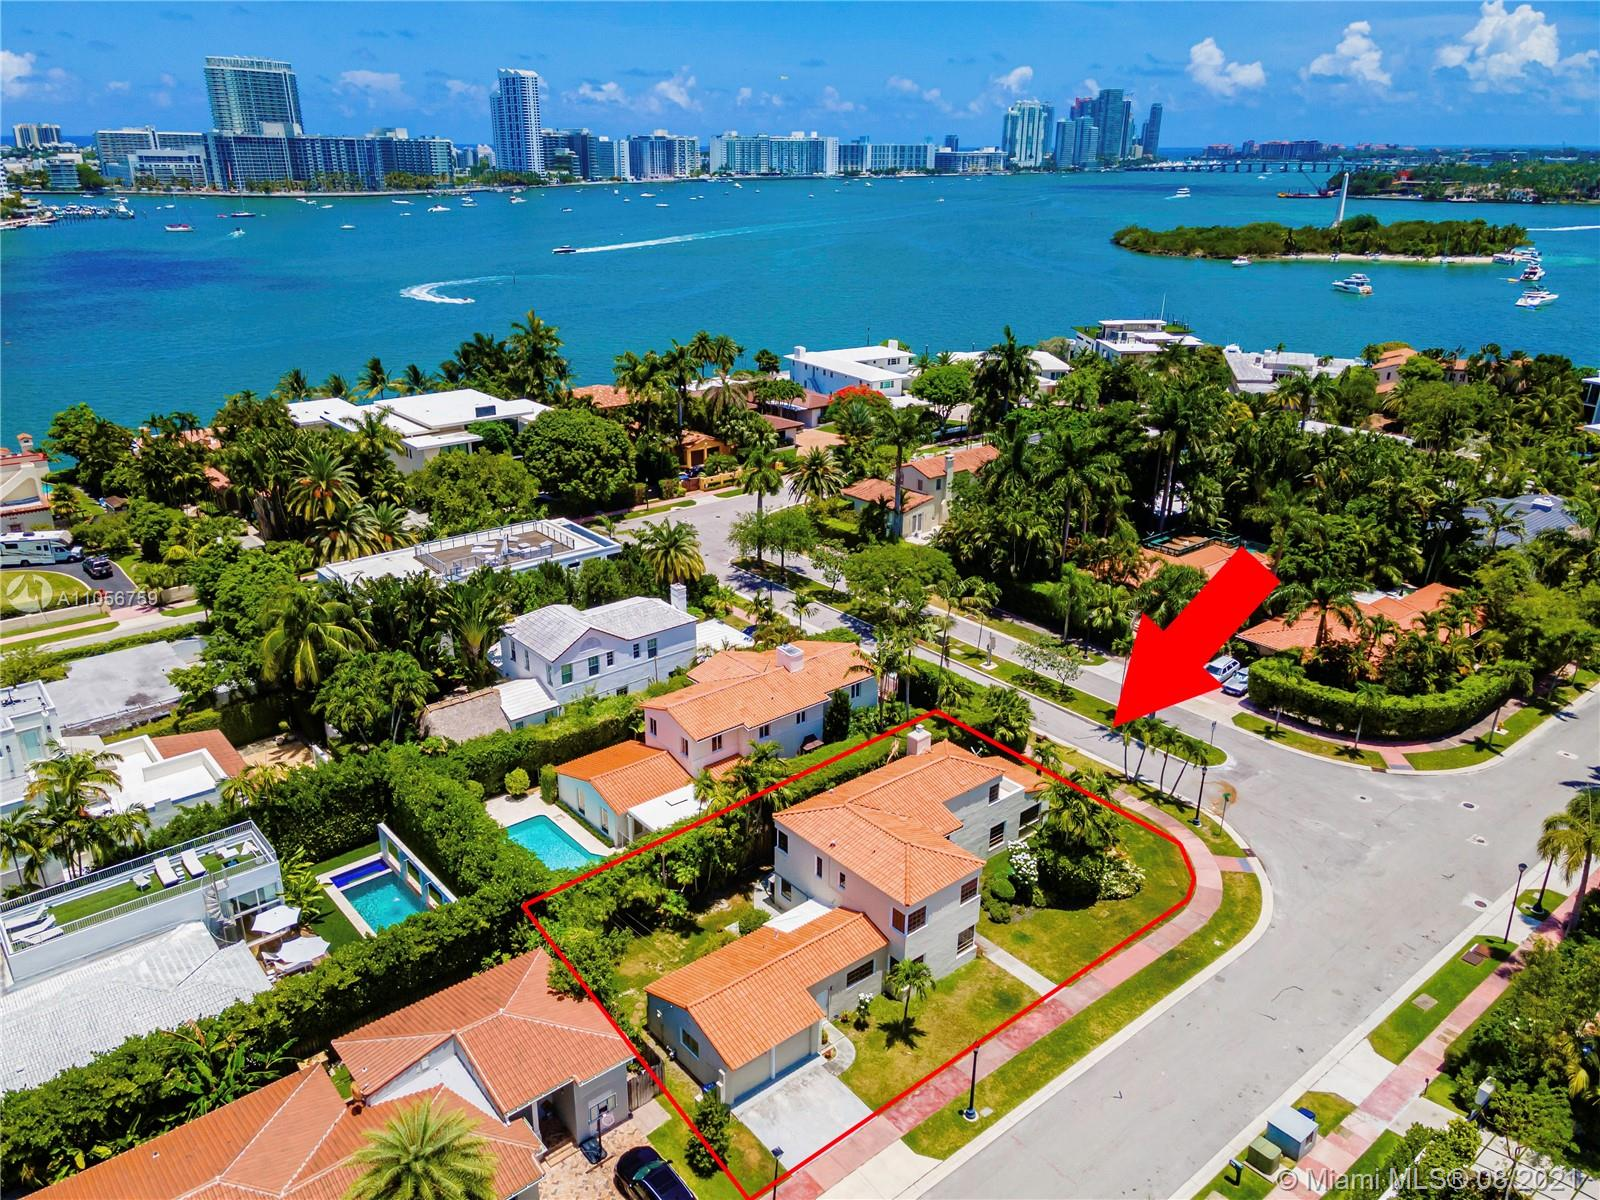 Prestigious Venetian Causeway - Rivo Alto Island - Classic 1936 Art Deco Home awaits your special vision. Large Corner Lot - minutes to Sunset Harbour, Lincoln Rd dining, shopping, fitness & more. Architectural features include: high ceilings, deco details, archways, moldings, original Spanish tile & wood flooring. Bedrm w/en-suite baths. 4 BRs (2 principal suites) + Florida room, formal DR, large kitchen & LR w/fireplace. Off utility room, a 2 car garage has been enclosed, finished & adds substantially to under A/C living space - may be used as separate guest quarters. Updates made to electric, plumbing, roof & 3 Central A/C units. Room for a pool. Best value today on the Venetian Islands. New Home across the street sold for approx. $20 Million. Check out Matterport virtual tour on link.